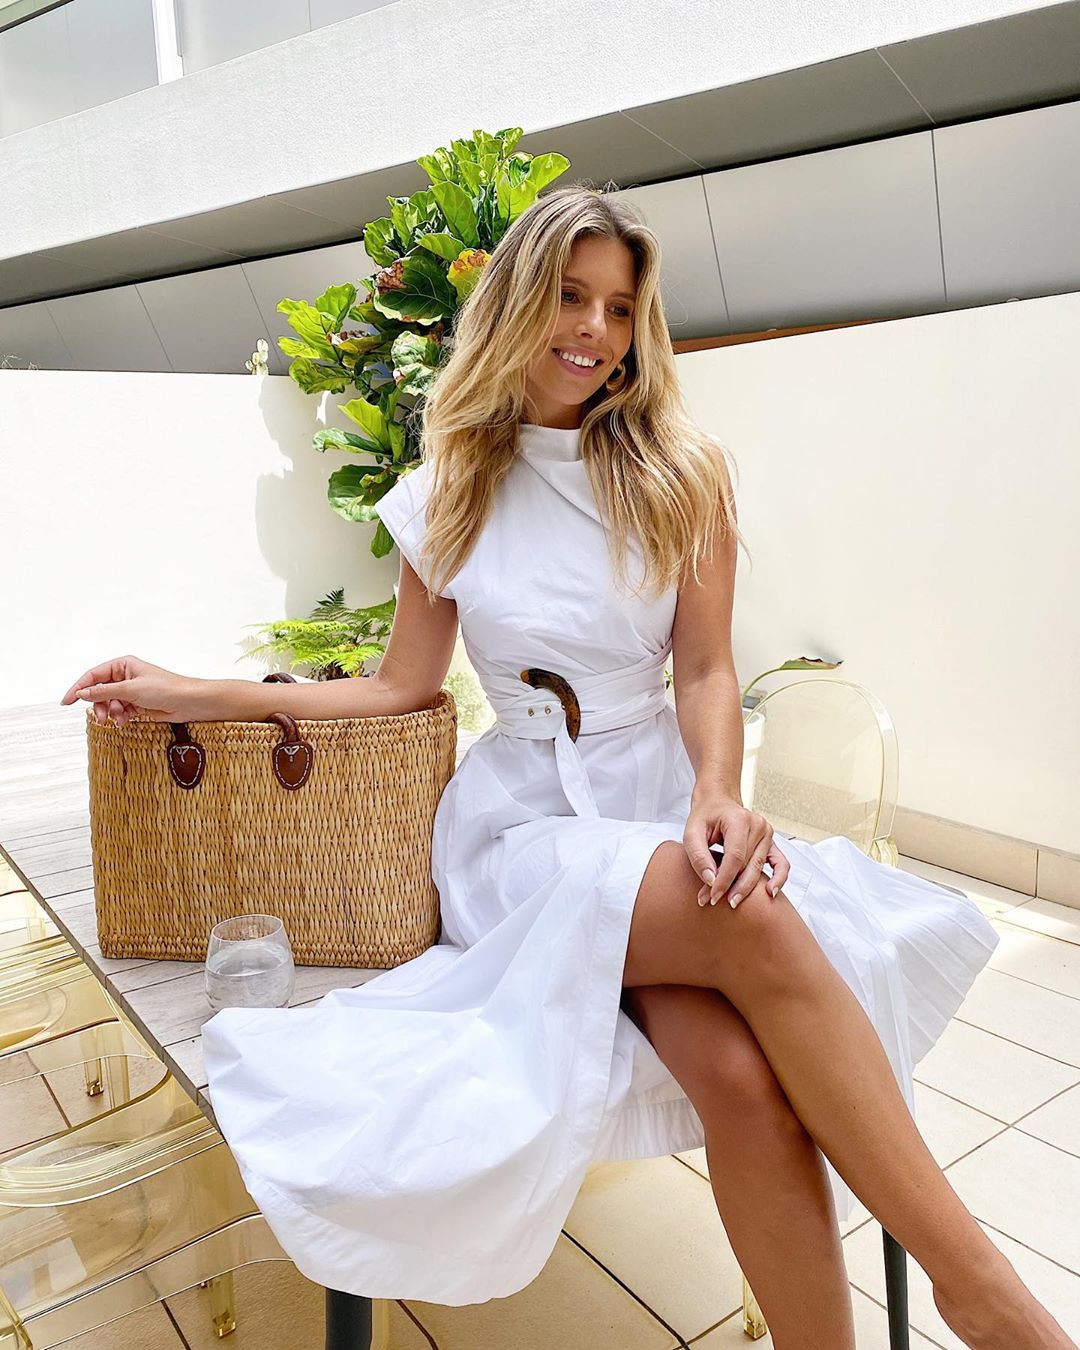 white outfits for girls with dress, legs pic, in blond hairs